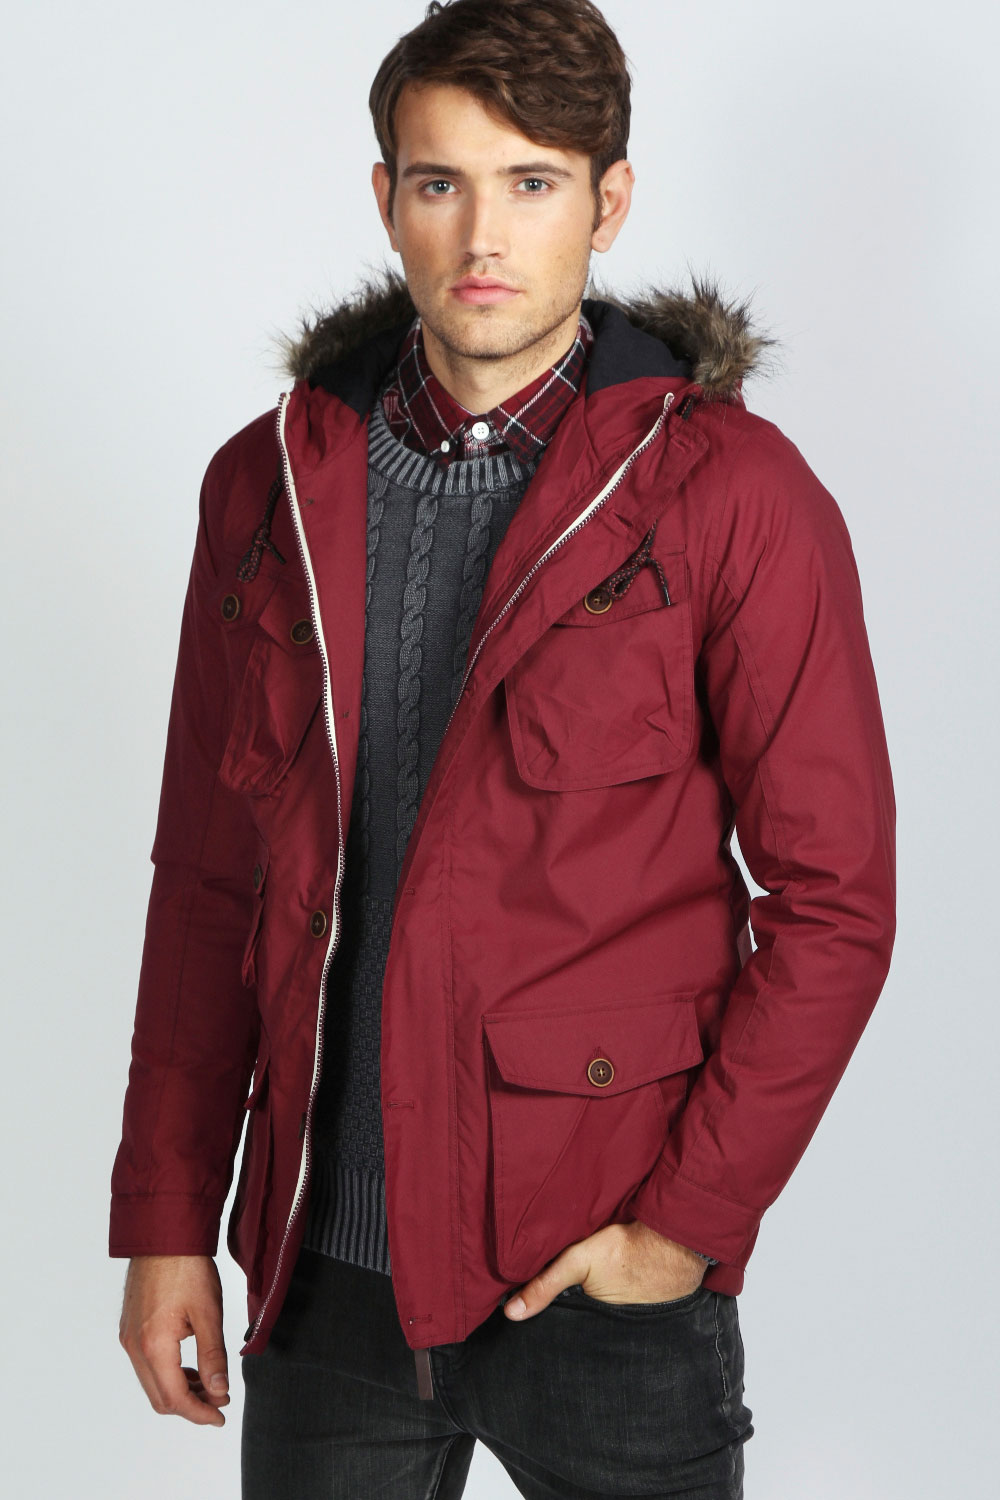 Boohoo Mens Nylon Jacquard Multi Pocket Parka Jacket In Burgundy ...